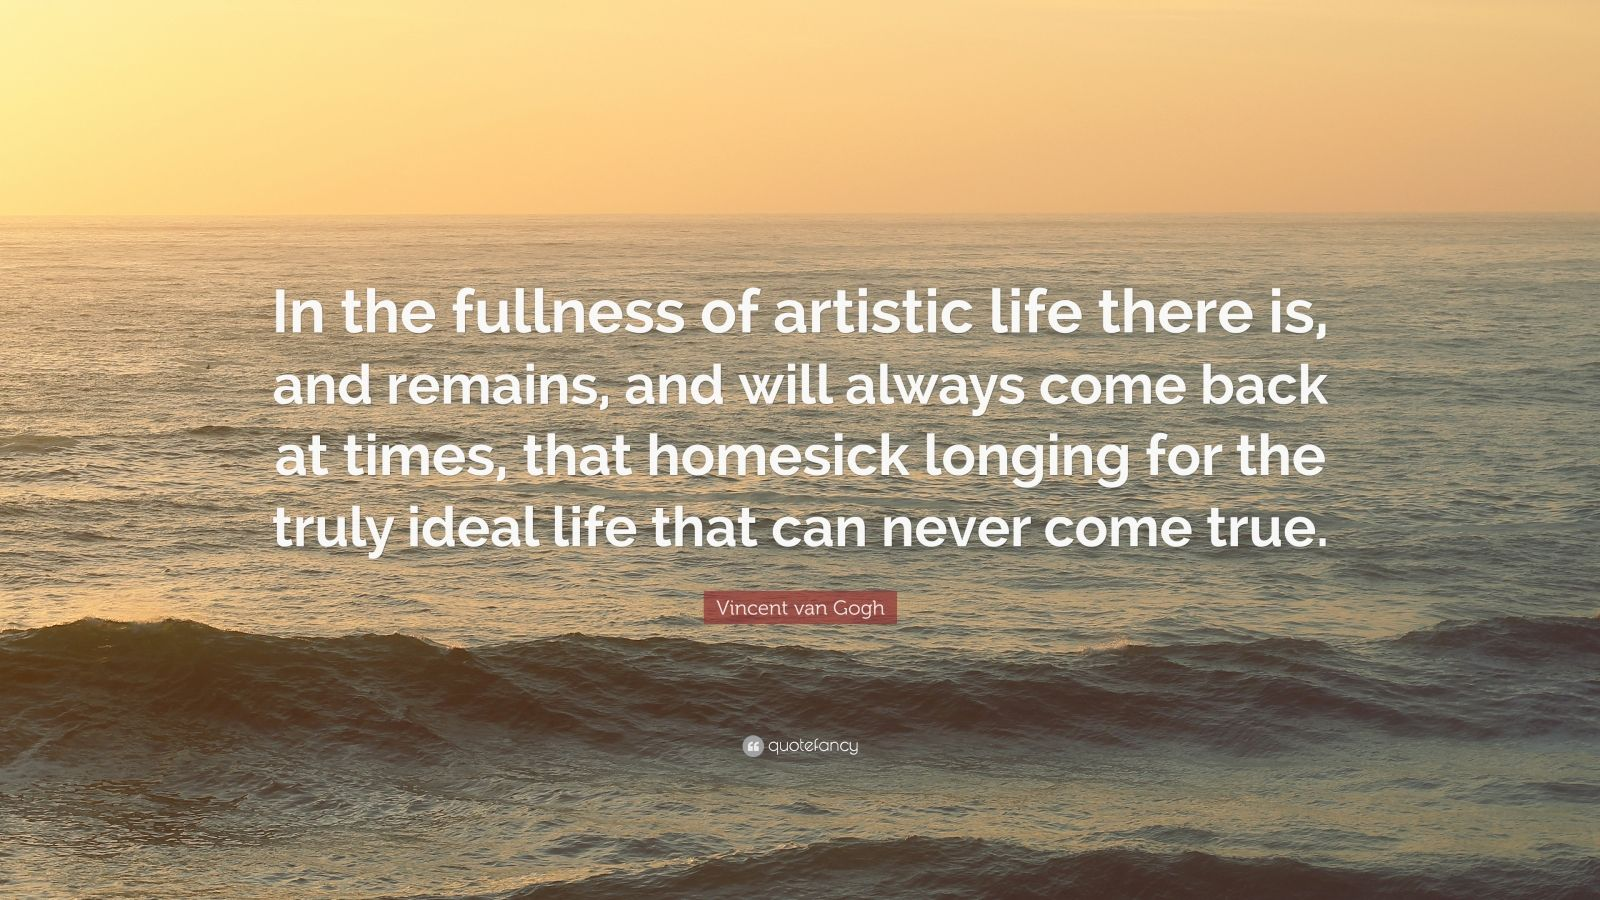 """Vincent van Gogh Quote: """"In the fullness of artistic life there is, and remains, and will always come back at times, that homesick longing for the truly ideal life that can never come true."""""""